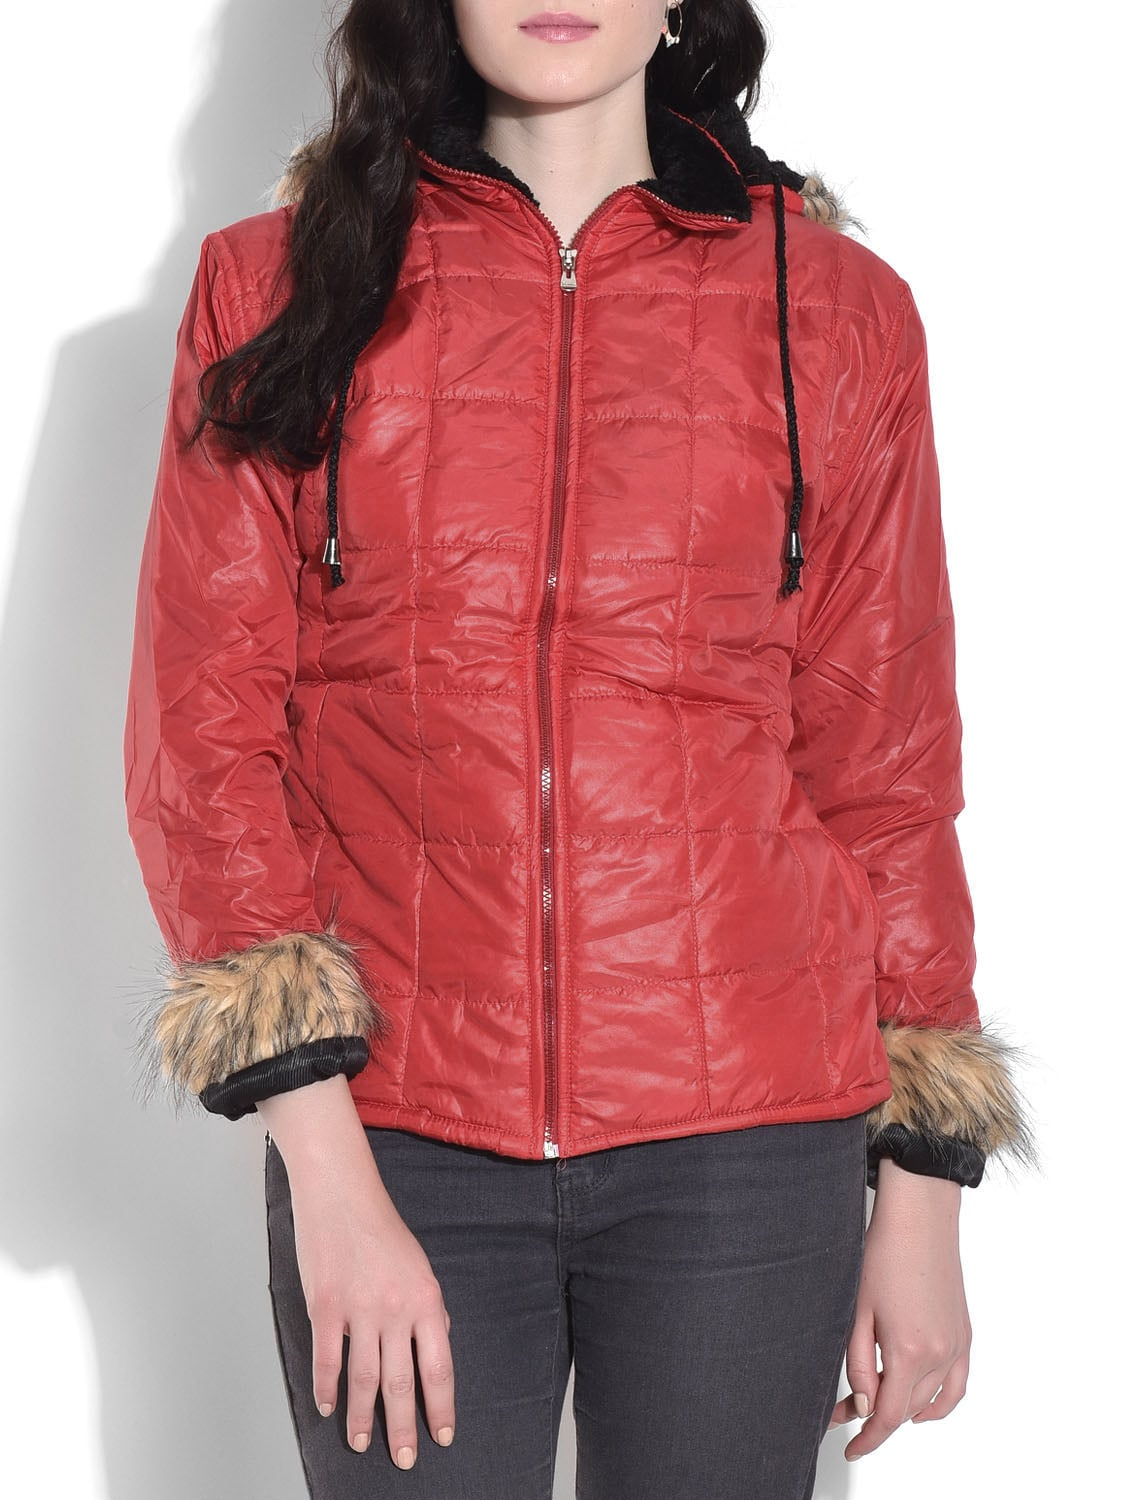 Red Quilted Jacket With Hood - By